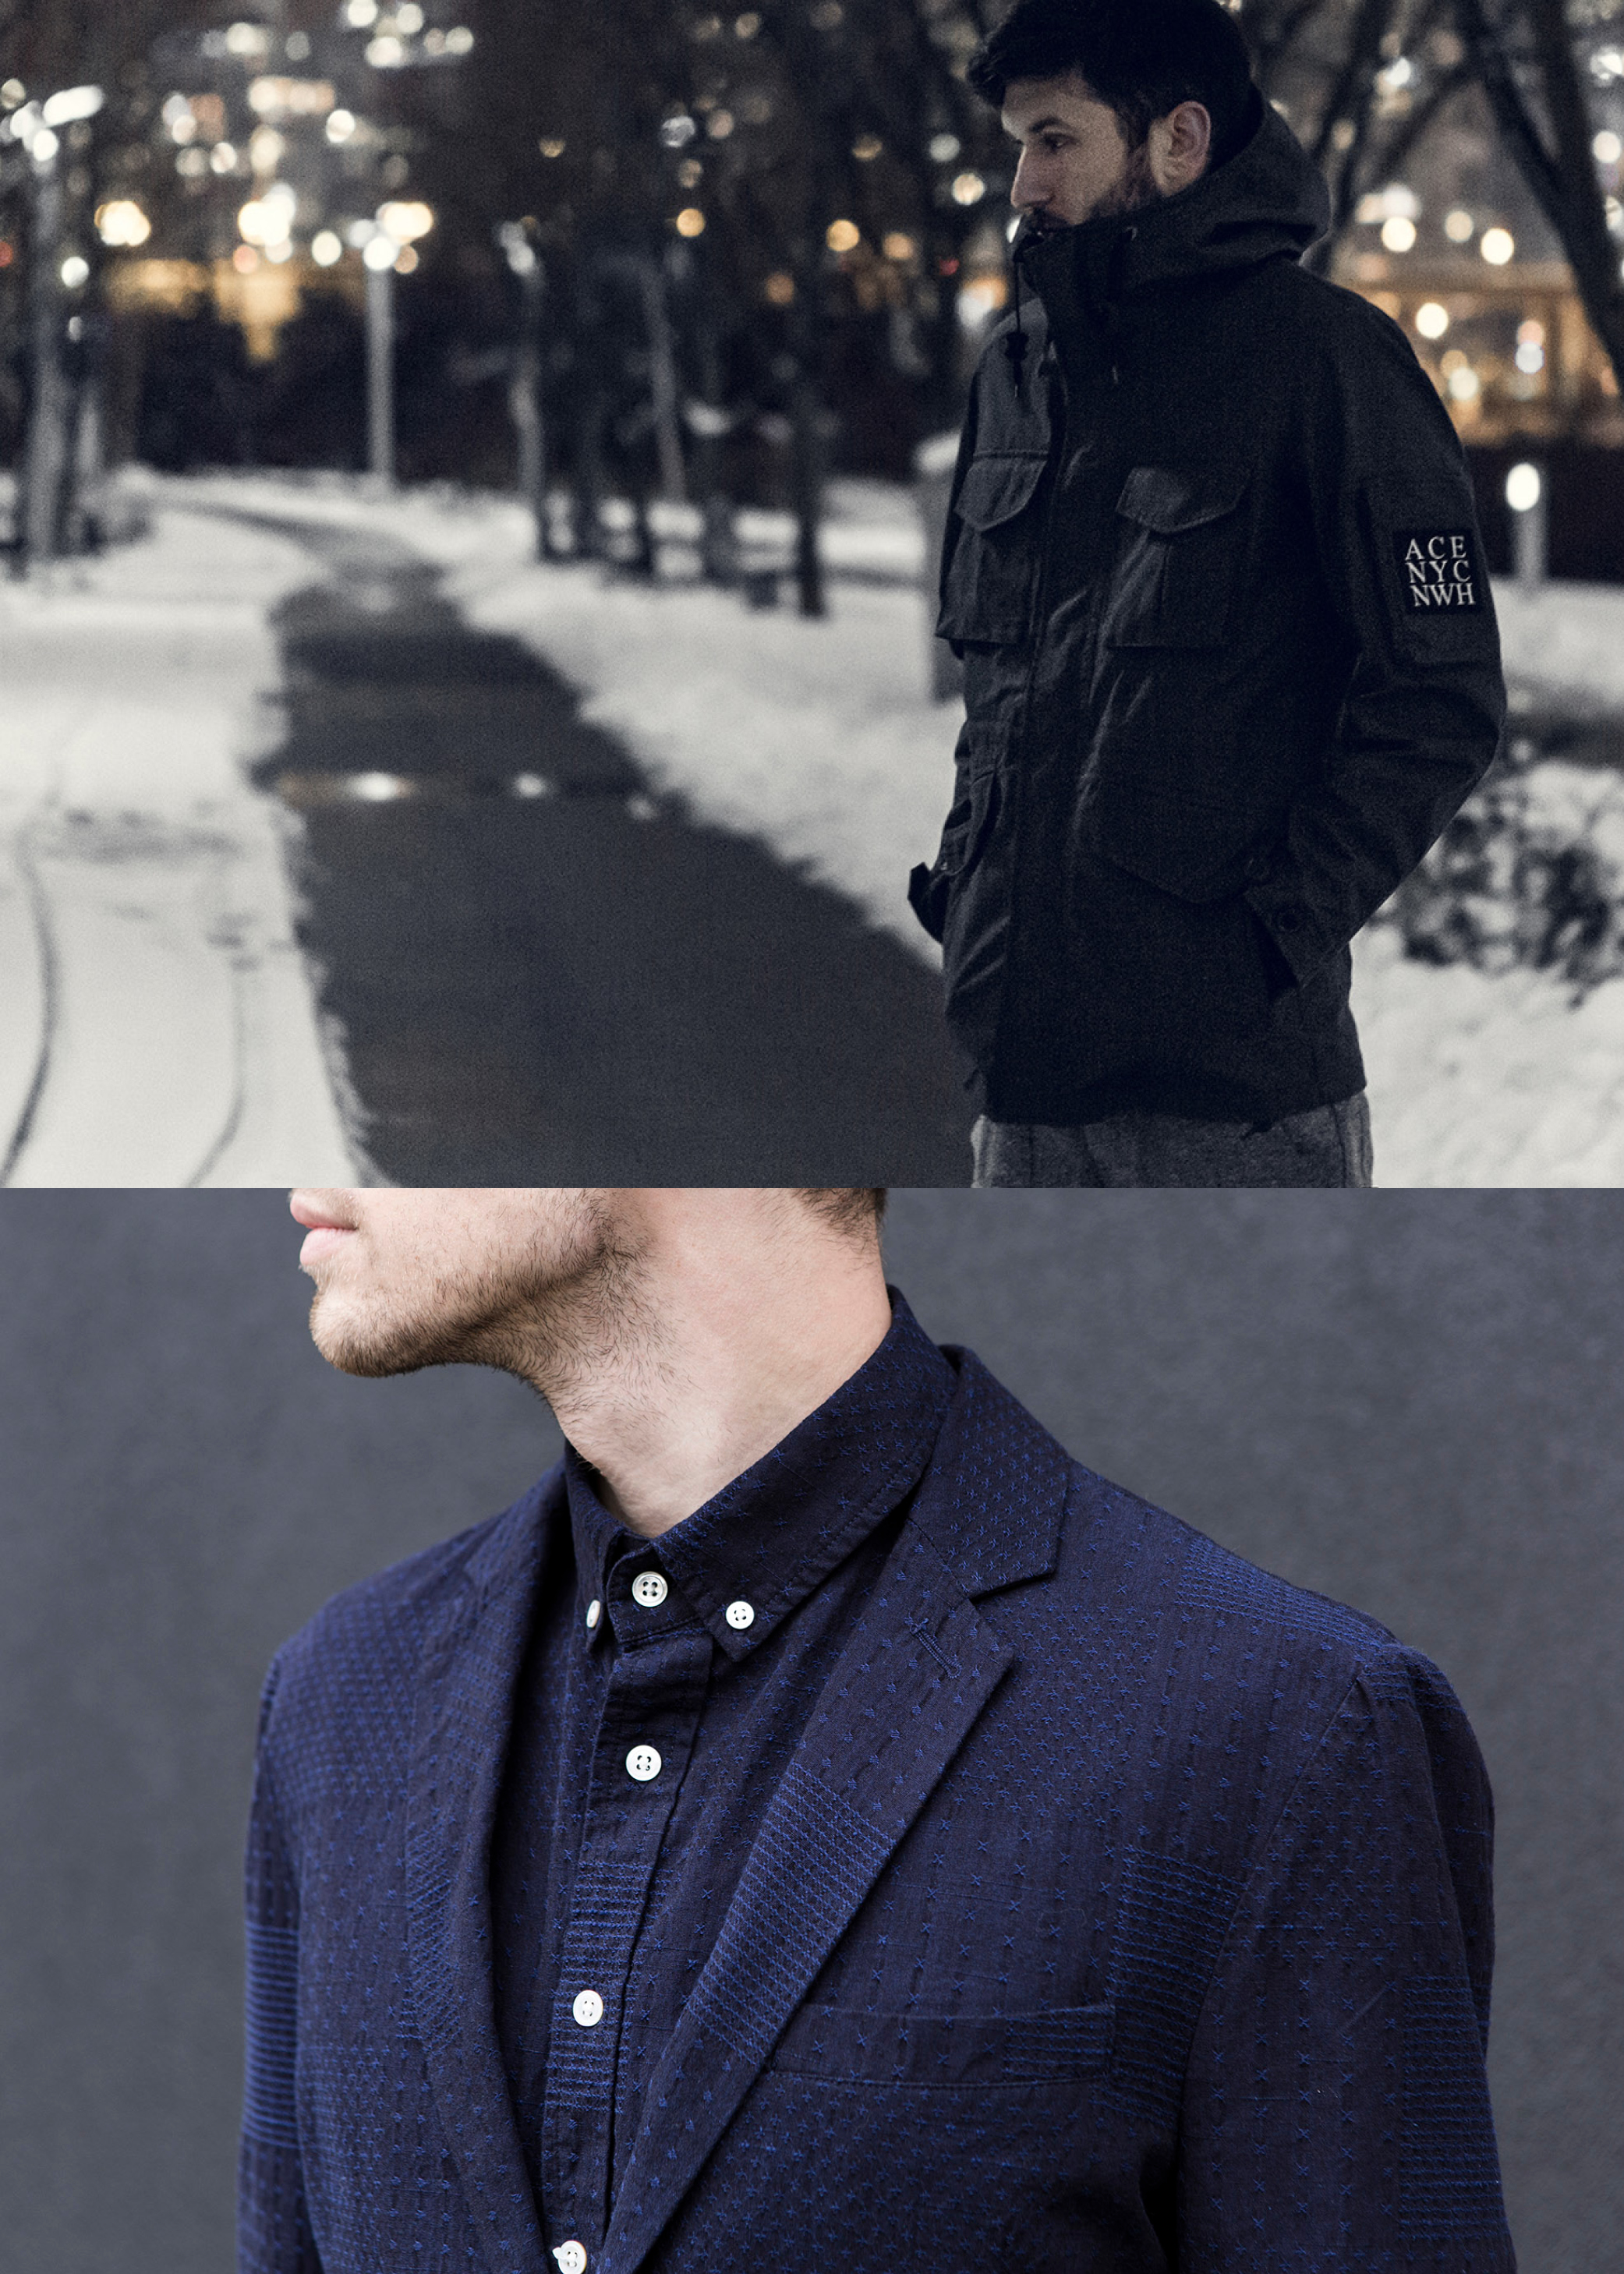 wings + horns | WINGSANDHORNS.COM @wingsandhorns — photos by Alan Chan via wings + horns